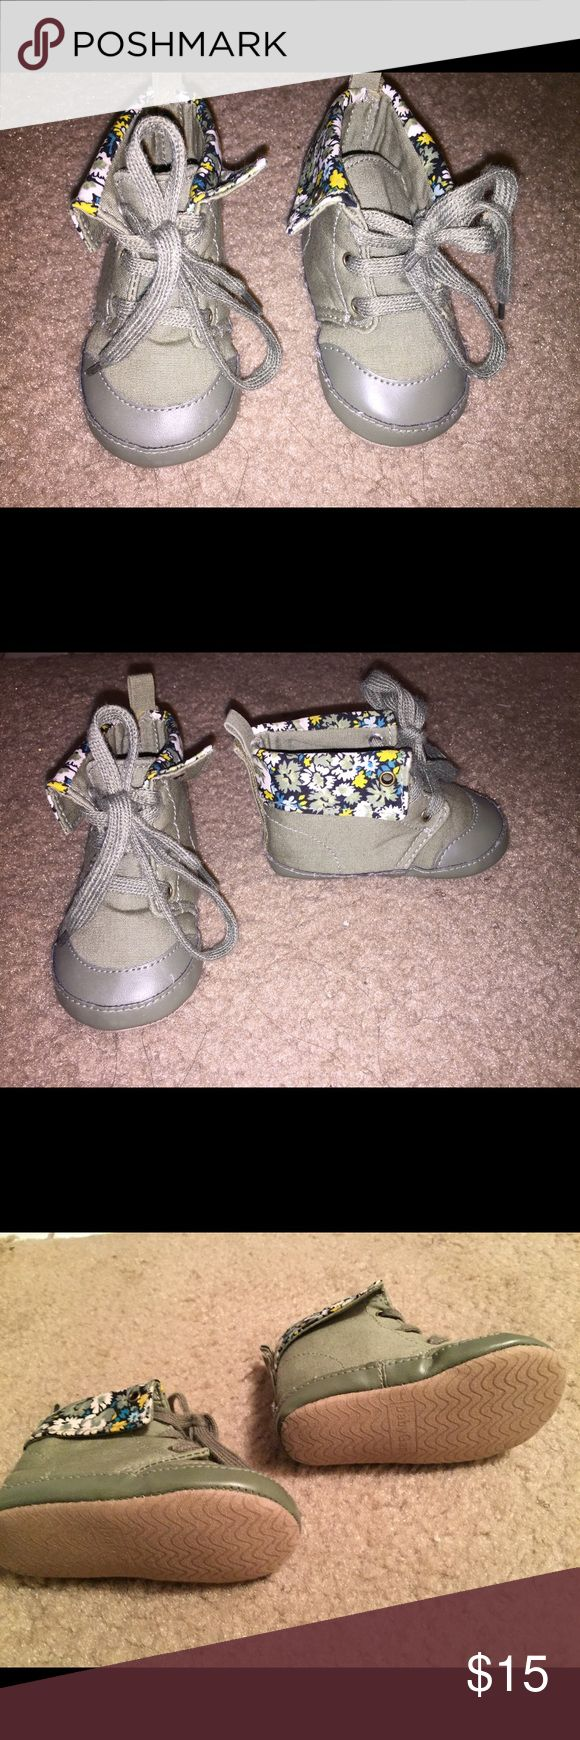 Baby Gap shoes! Adorable green baby shoes!! Gap Shoes Boots